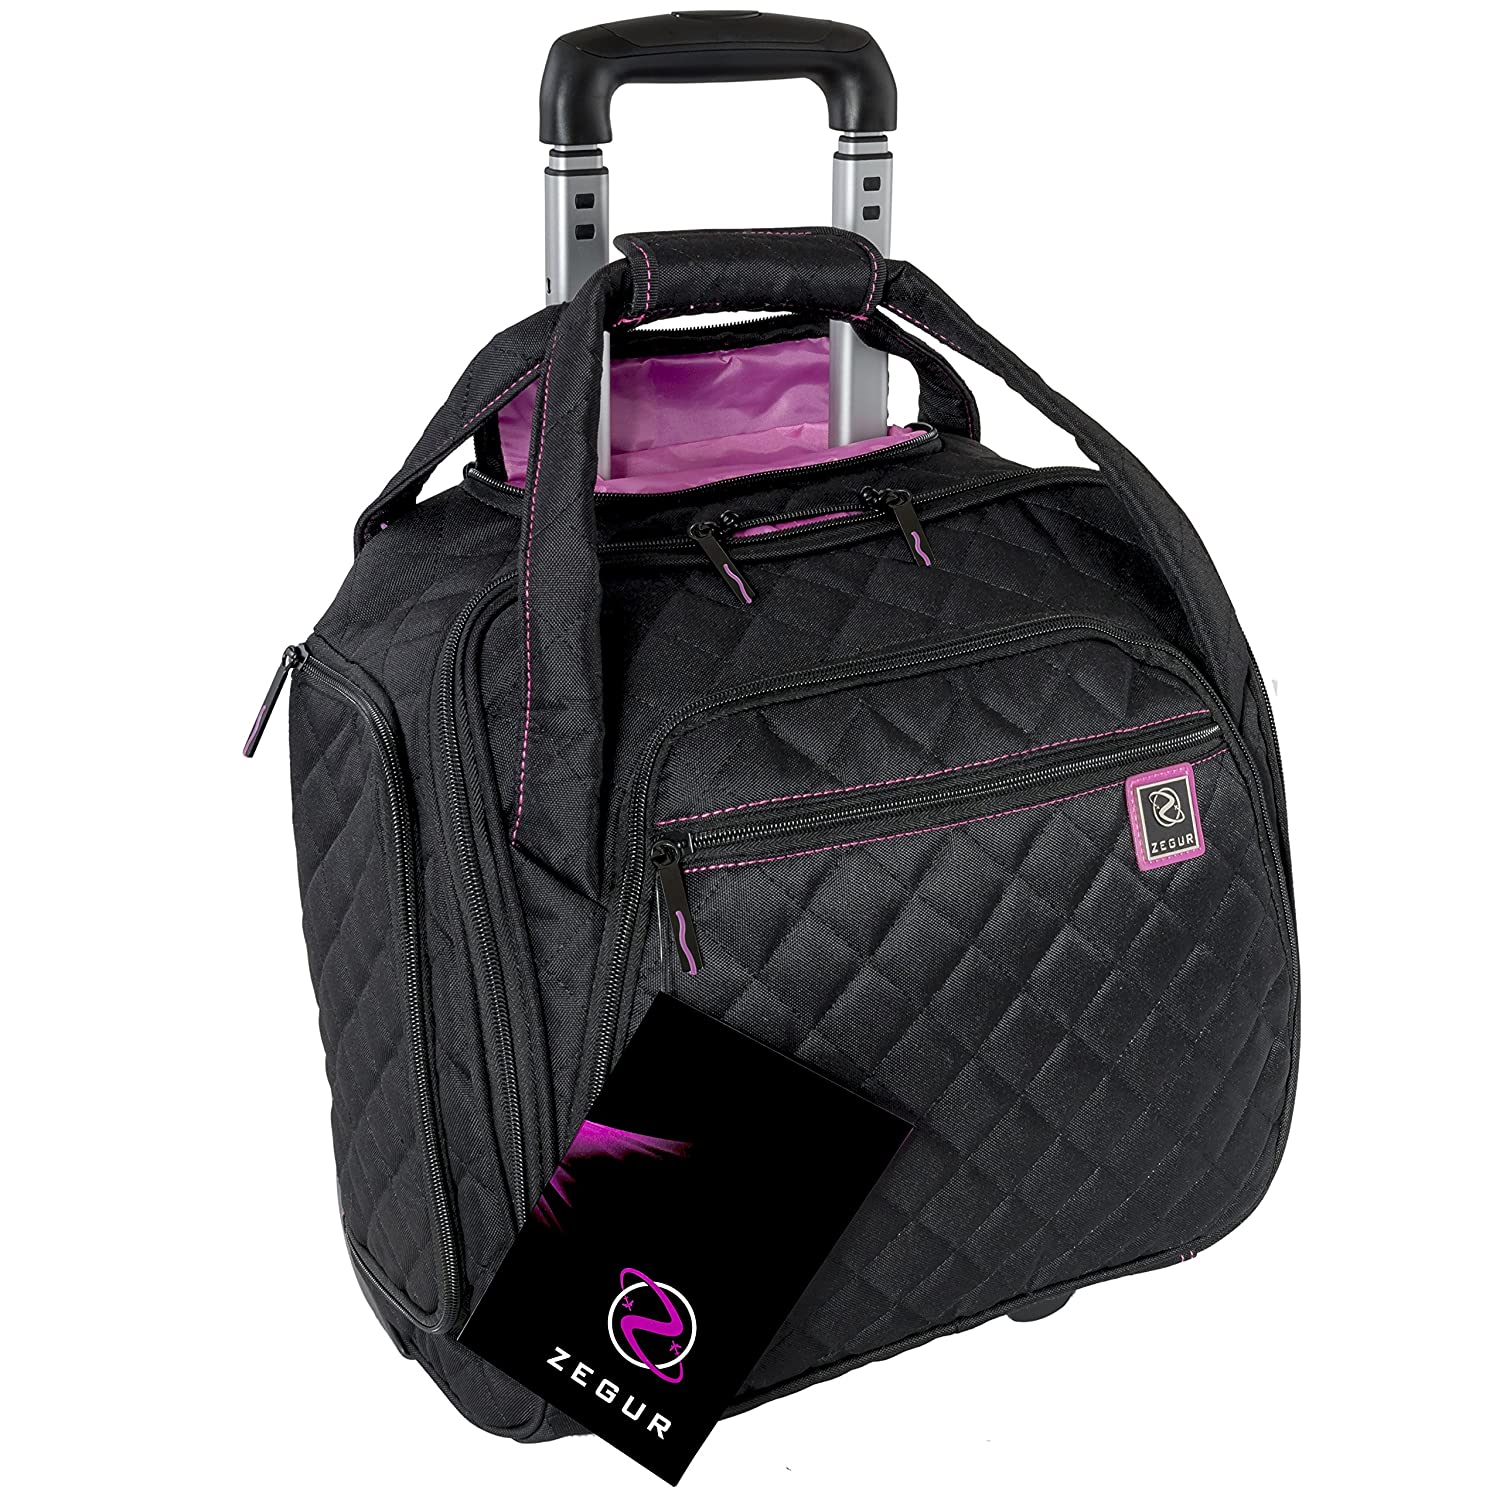 Wheeled Travel Tote Bag ZEGUR Quilted Rolling Underseat Carry-On Luggage